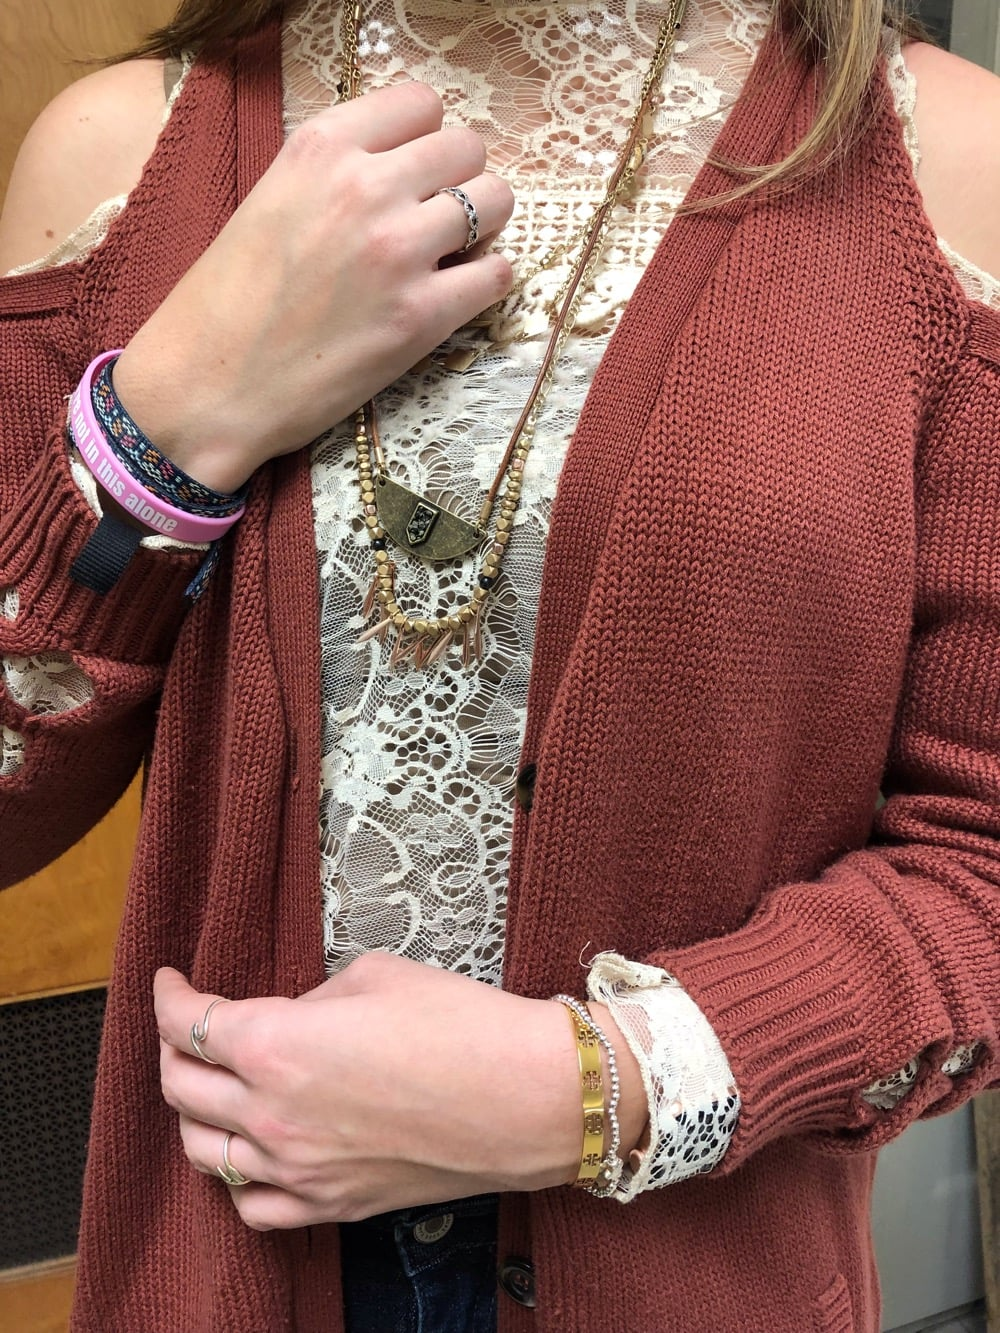 Gentry wears layers of bronze and gold beaded necklaces and mismatched bracelets.